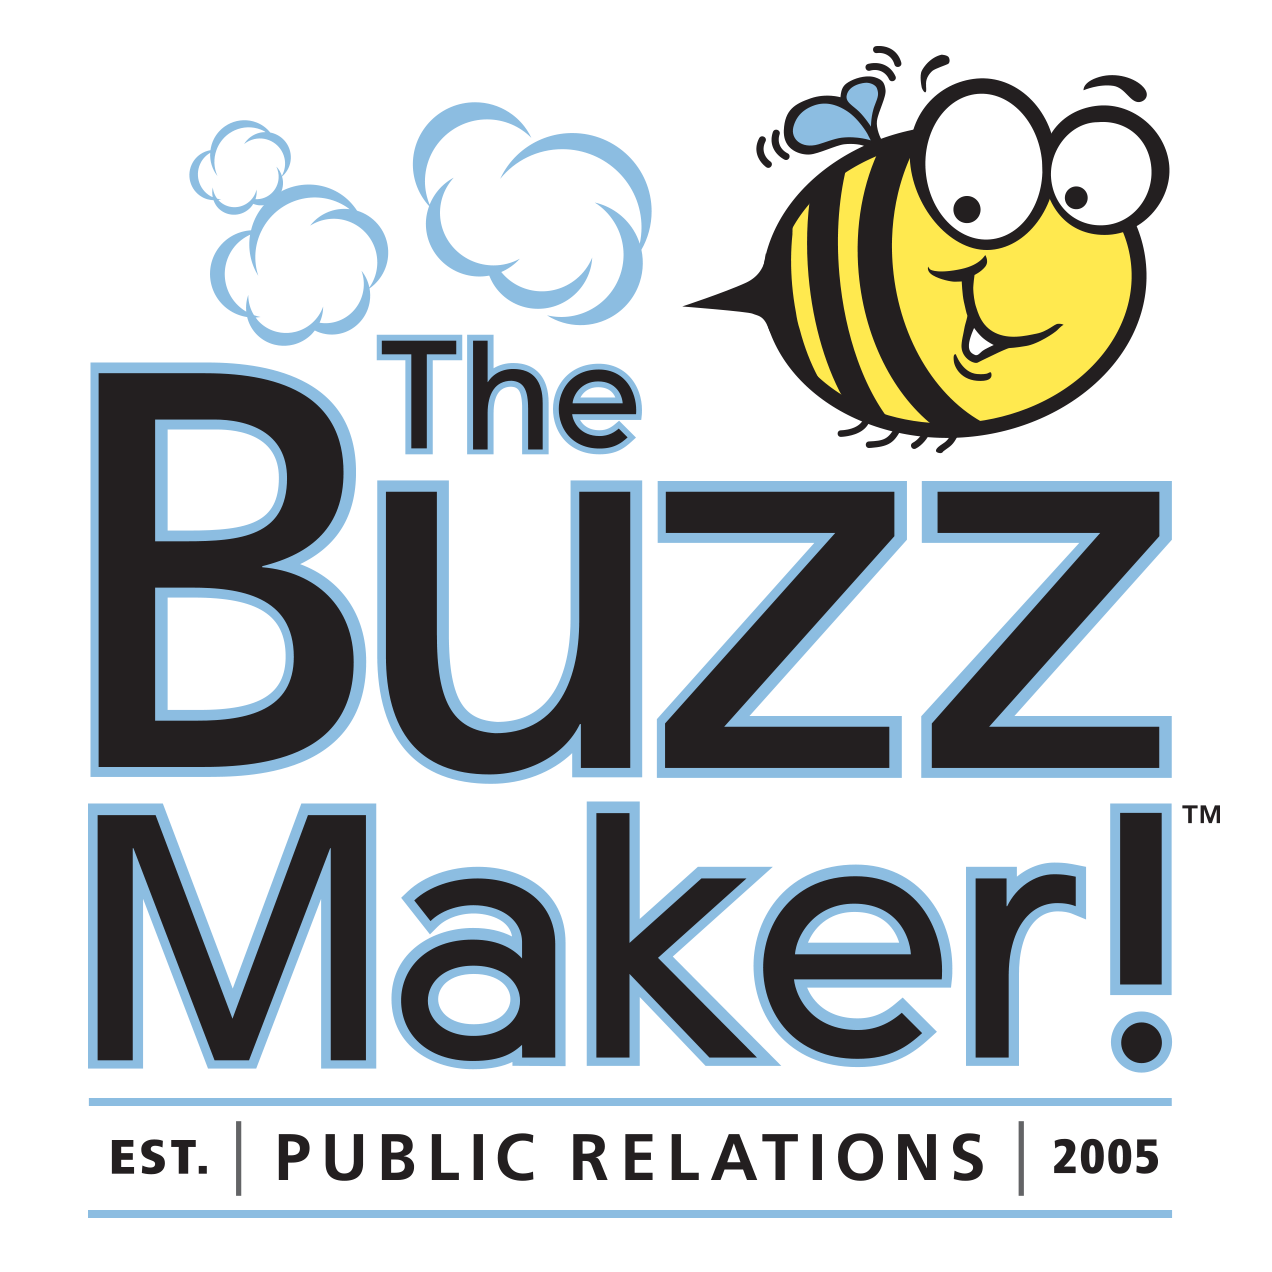 The Buzz Maker!™ Public Relations